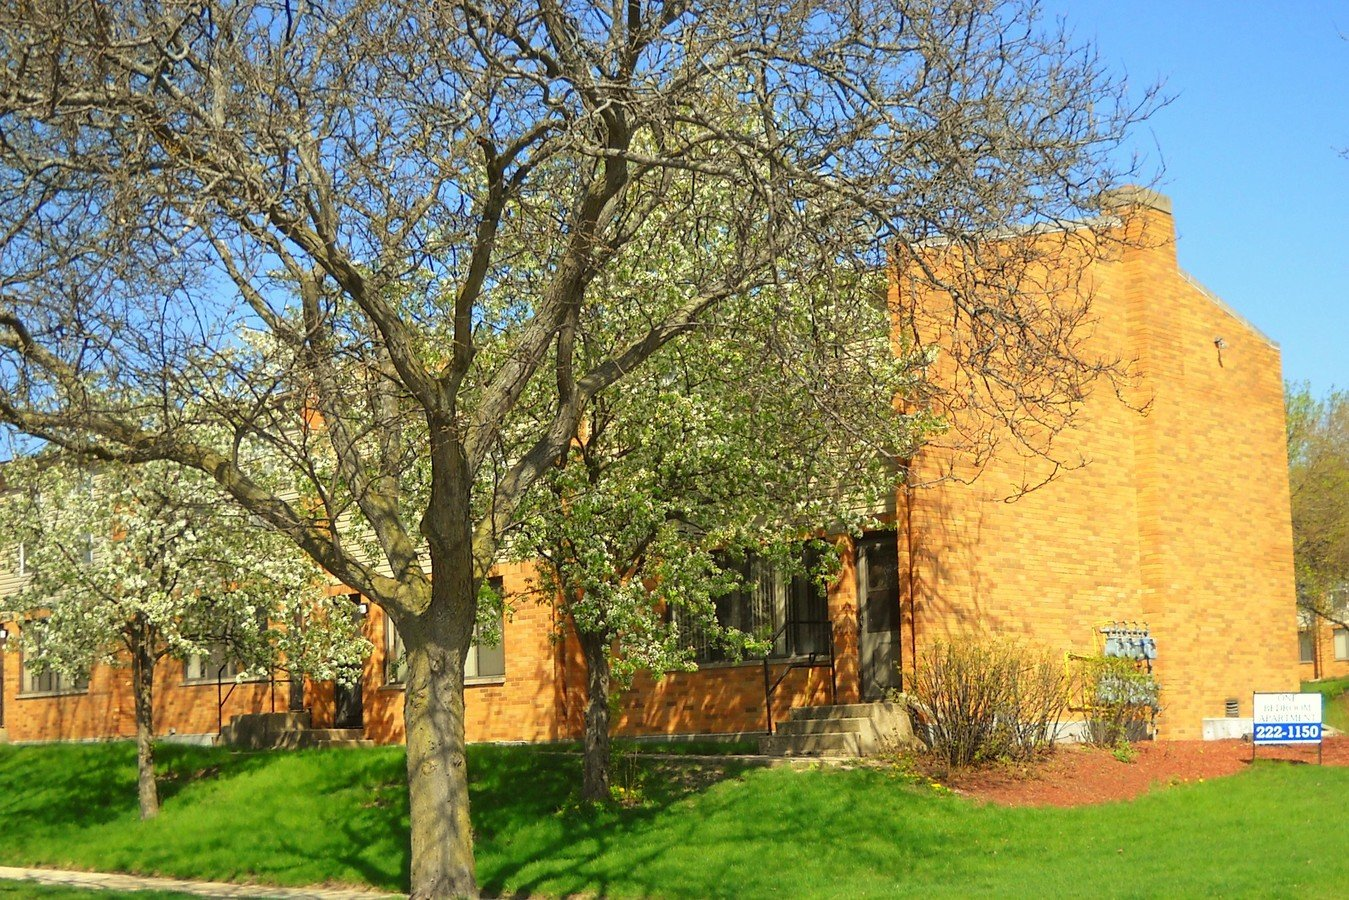 1 Bedroom 1 Bathroom Apartment for rent at Glendale Townhomes in Madison, WI